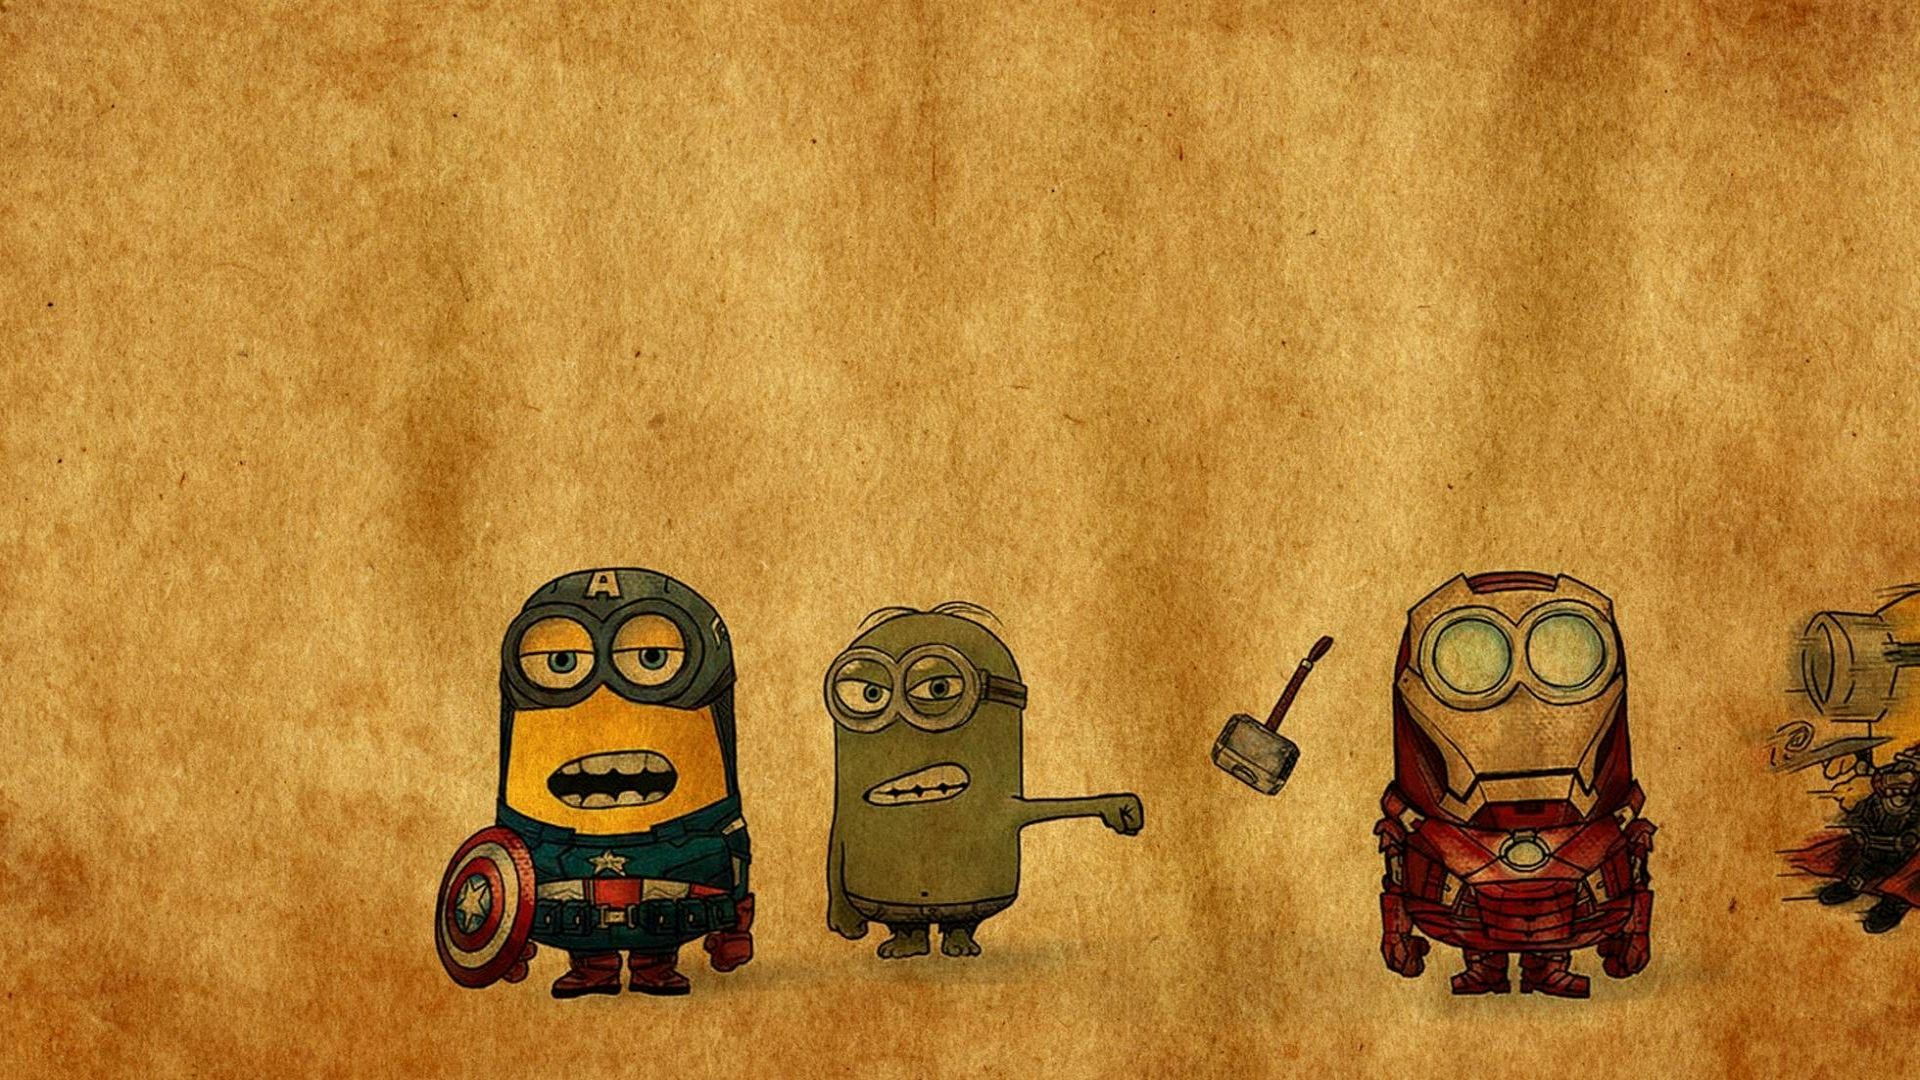 55 Cute Minion Wallpapers Hd For Desktop Minions Funny Avengers